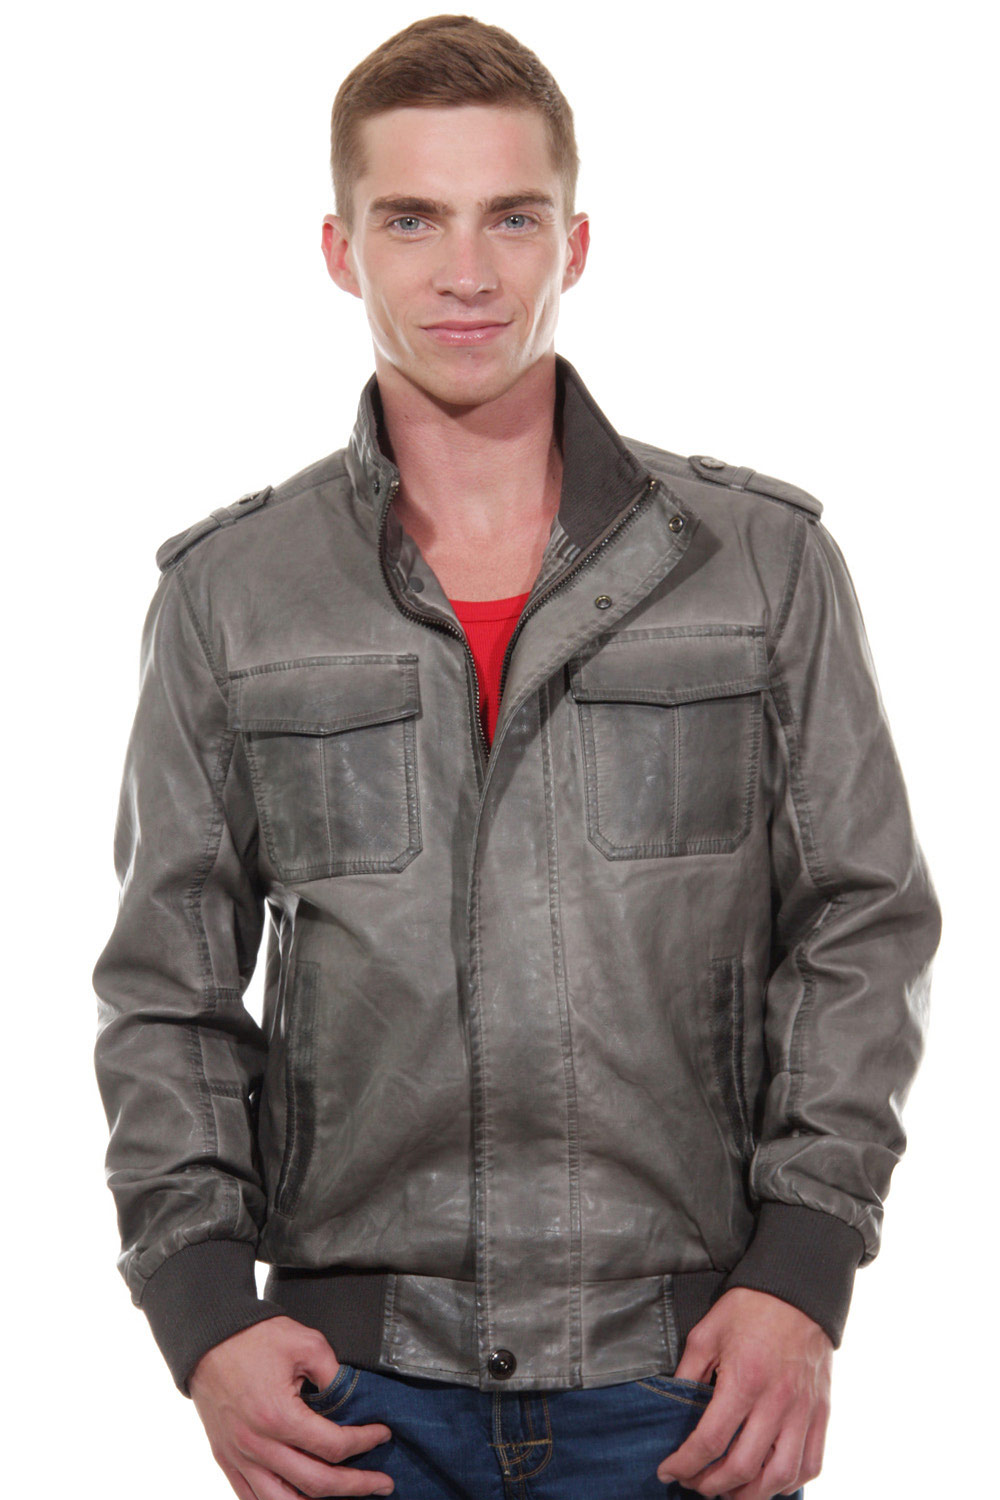 EXUMA jacket slim fit at oboy.com